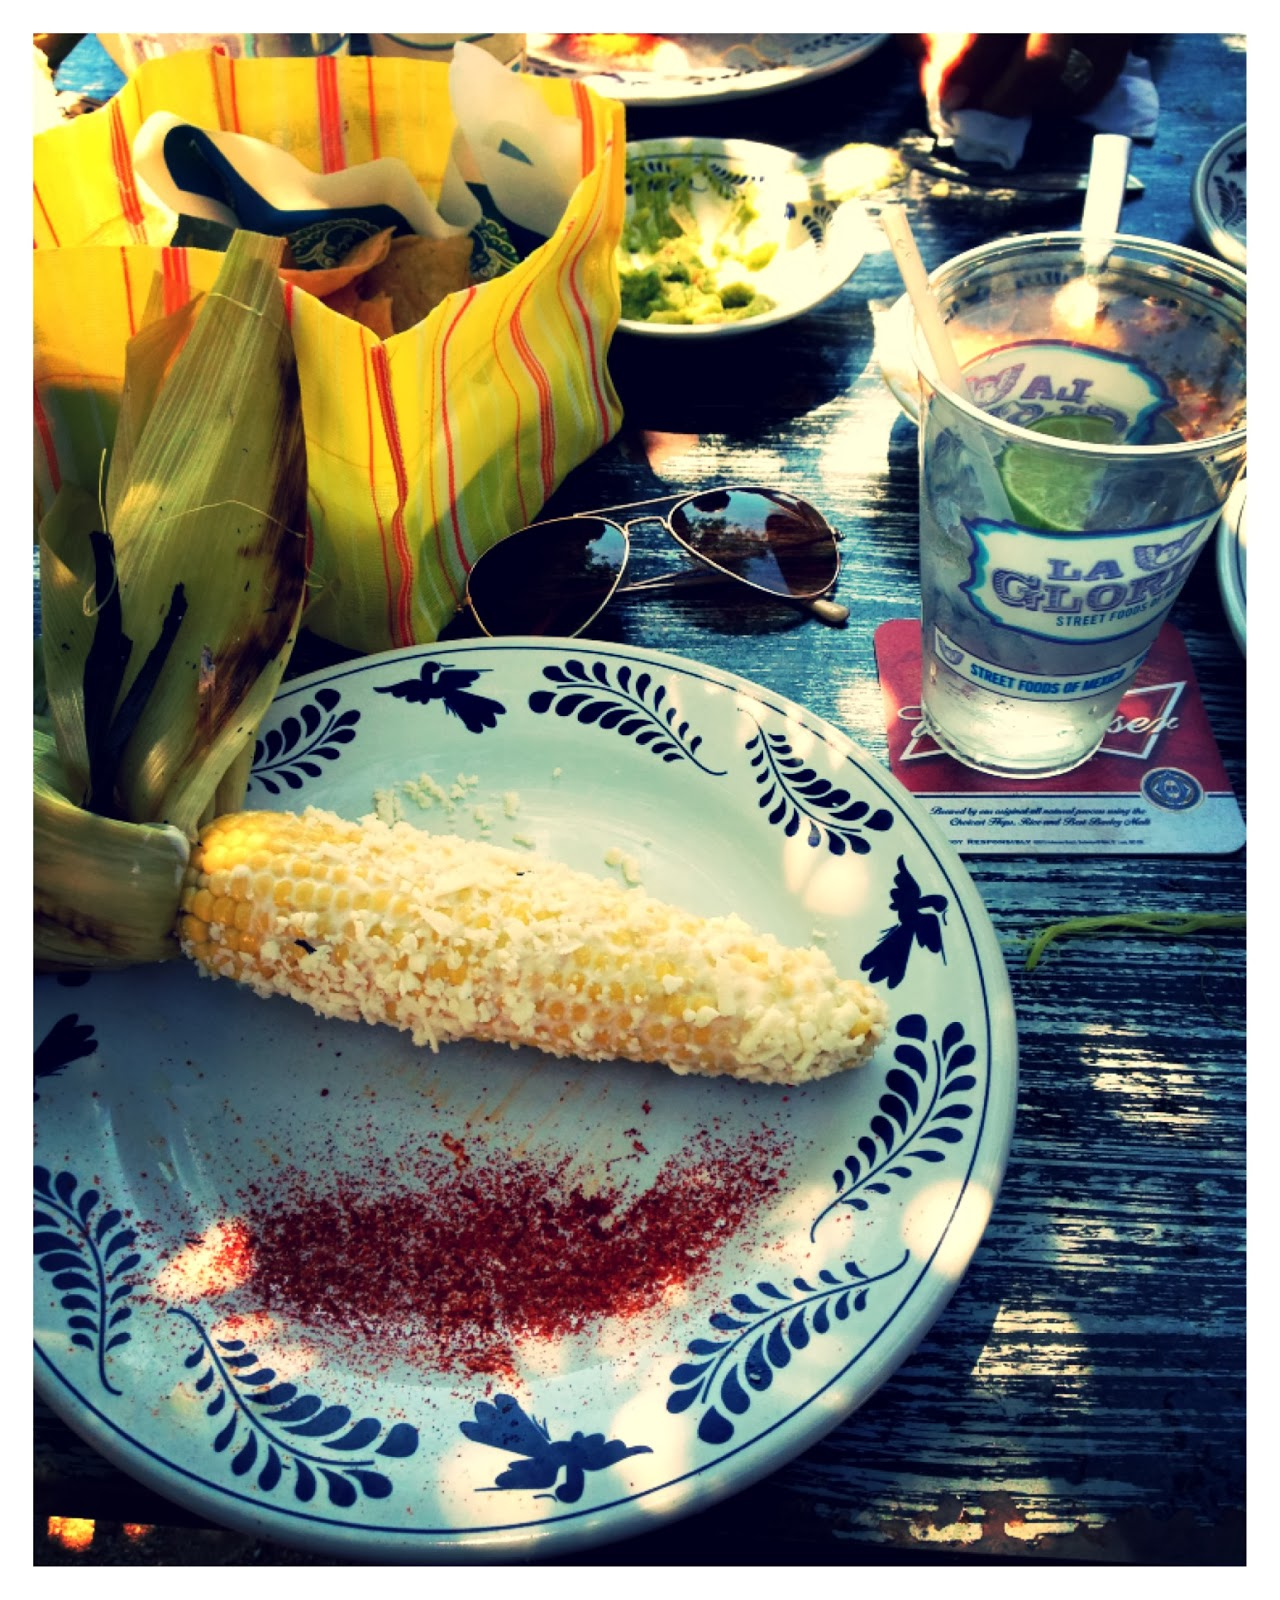 la gloria corn food